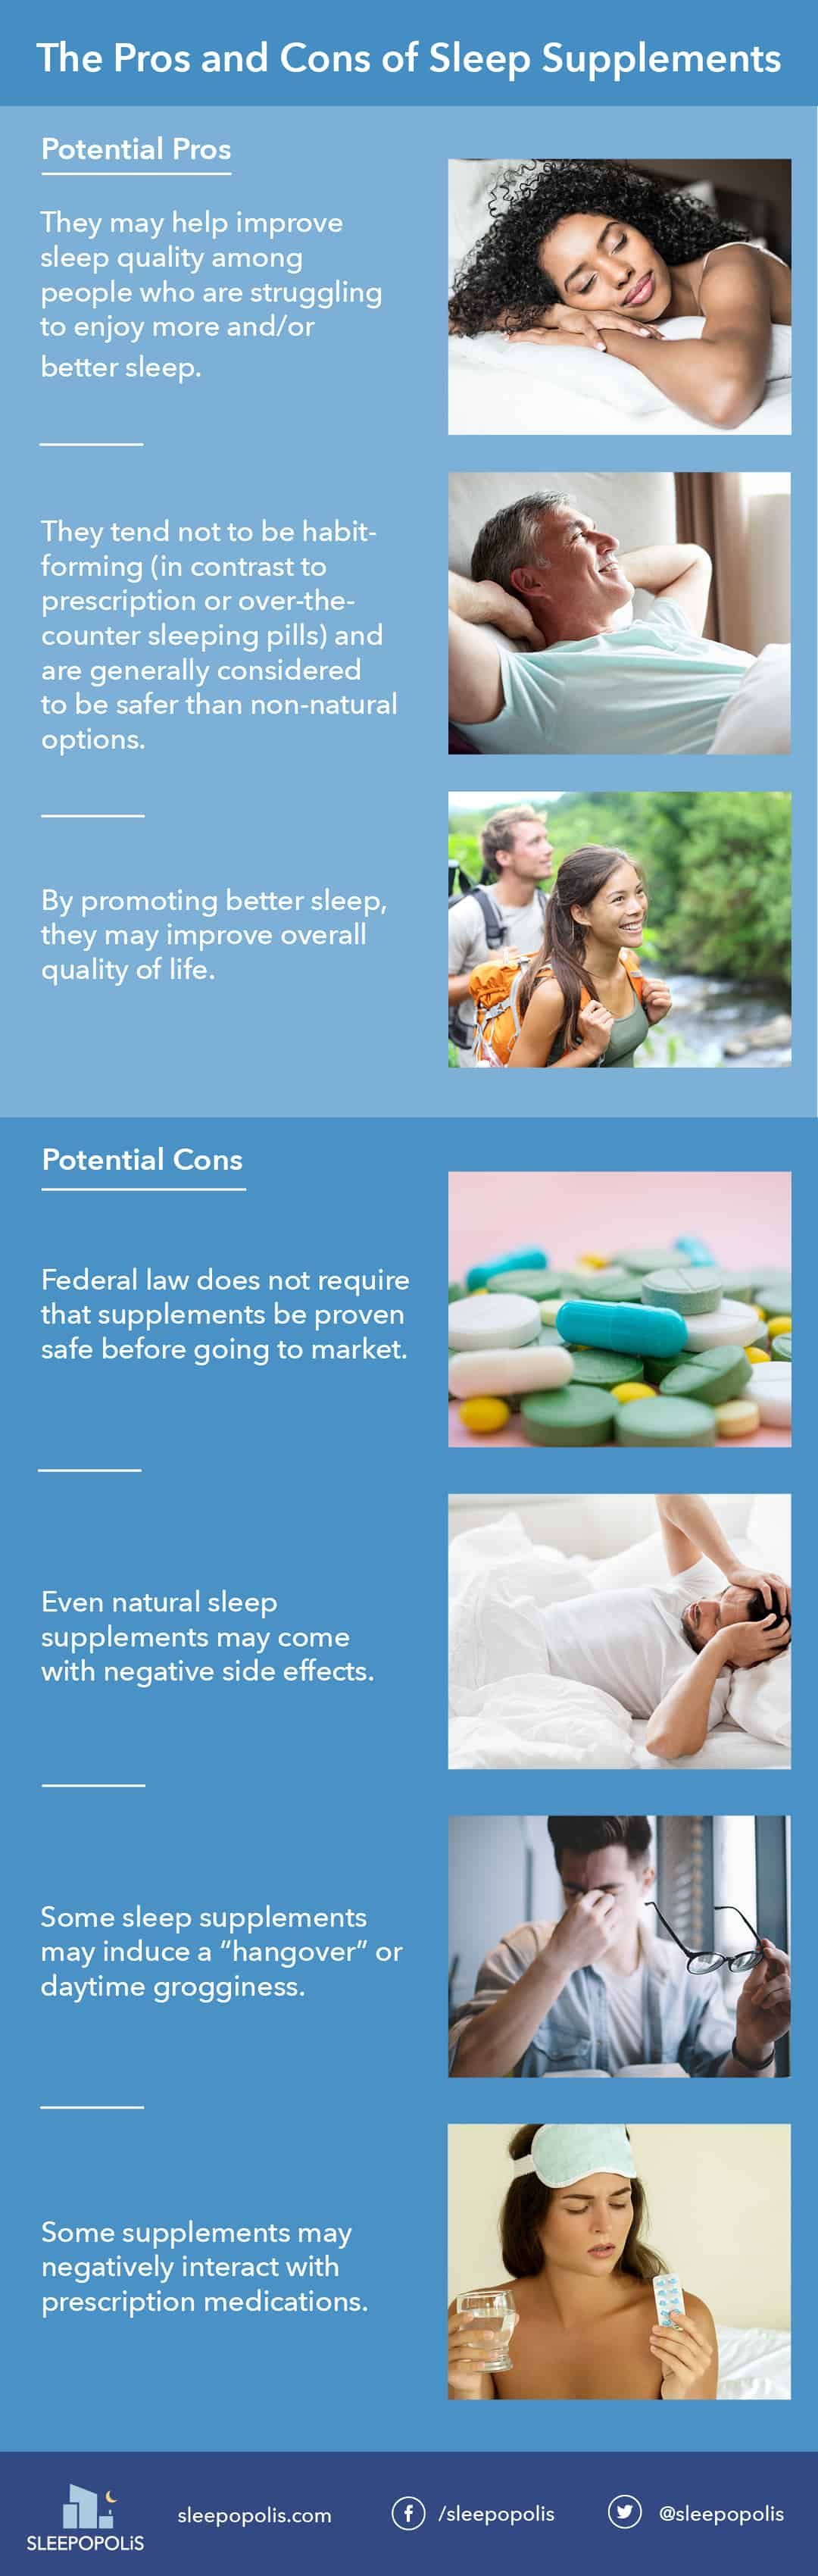 Sleep Supplements Pros and Cons